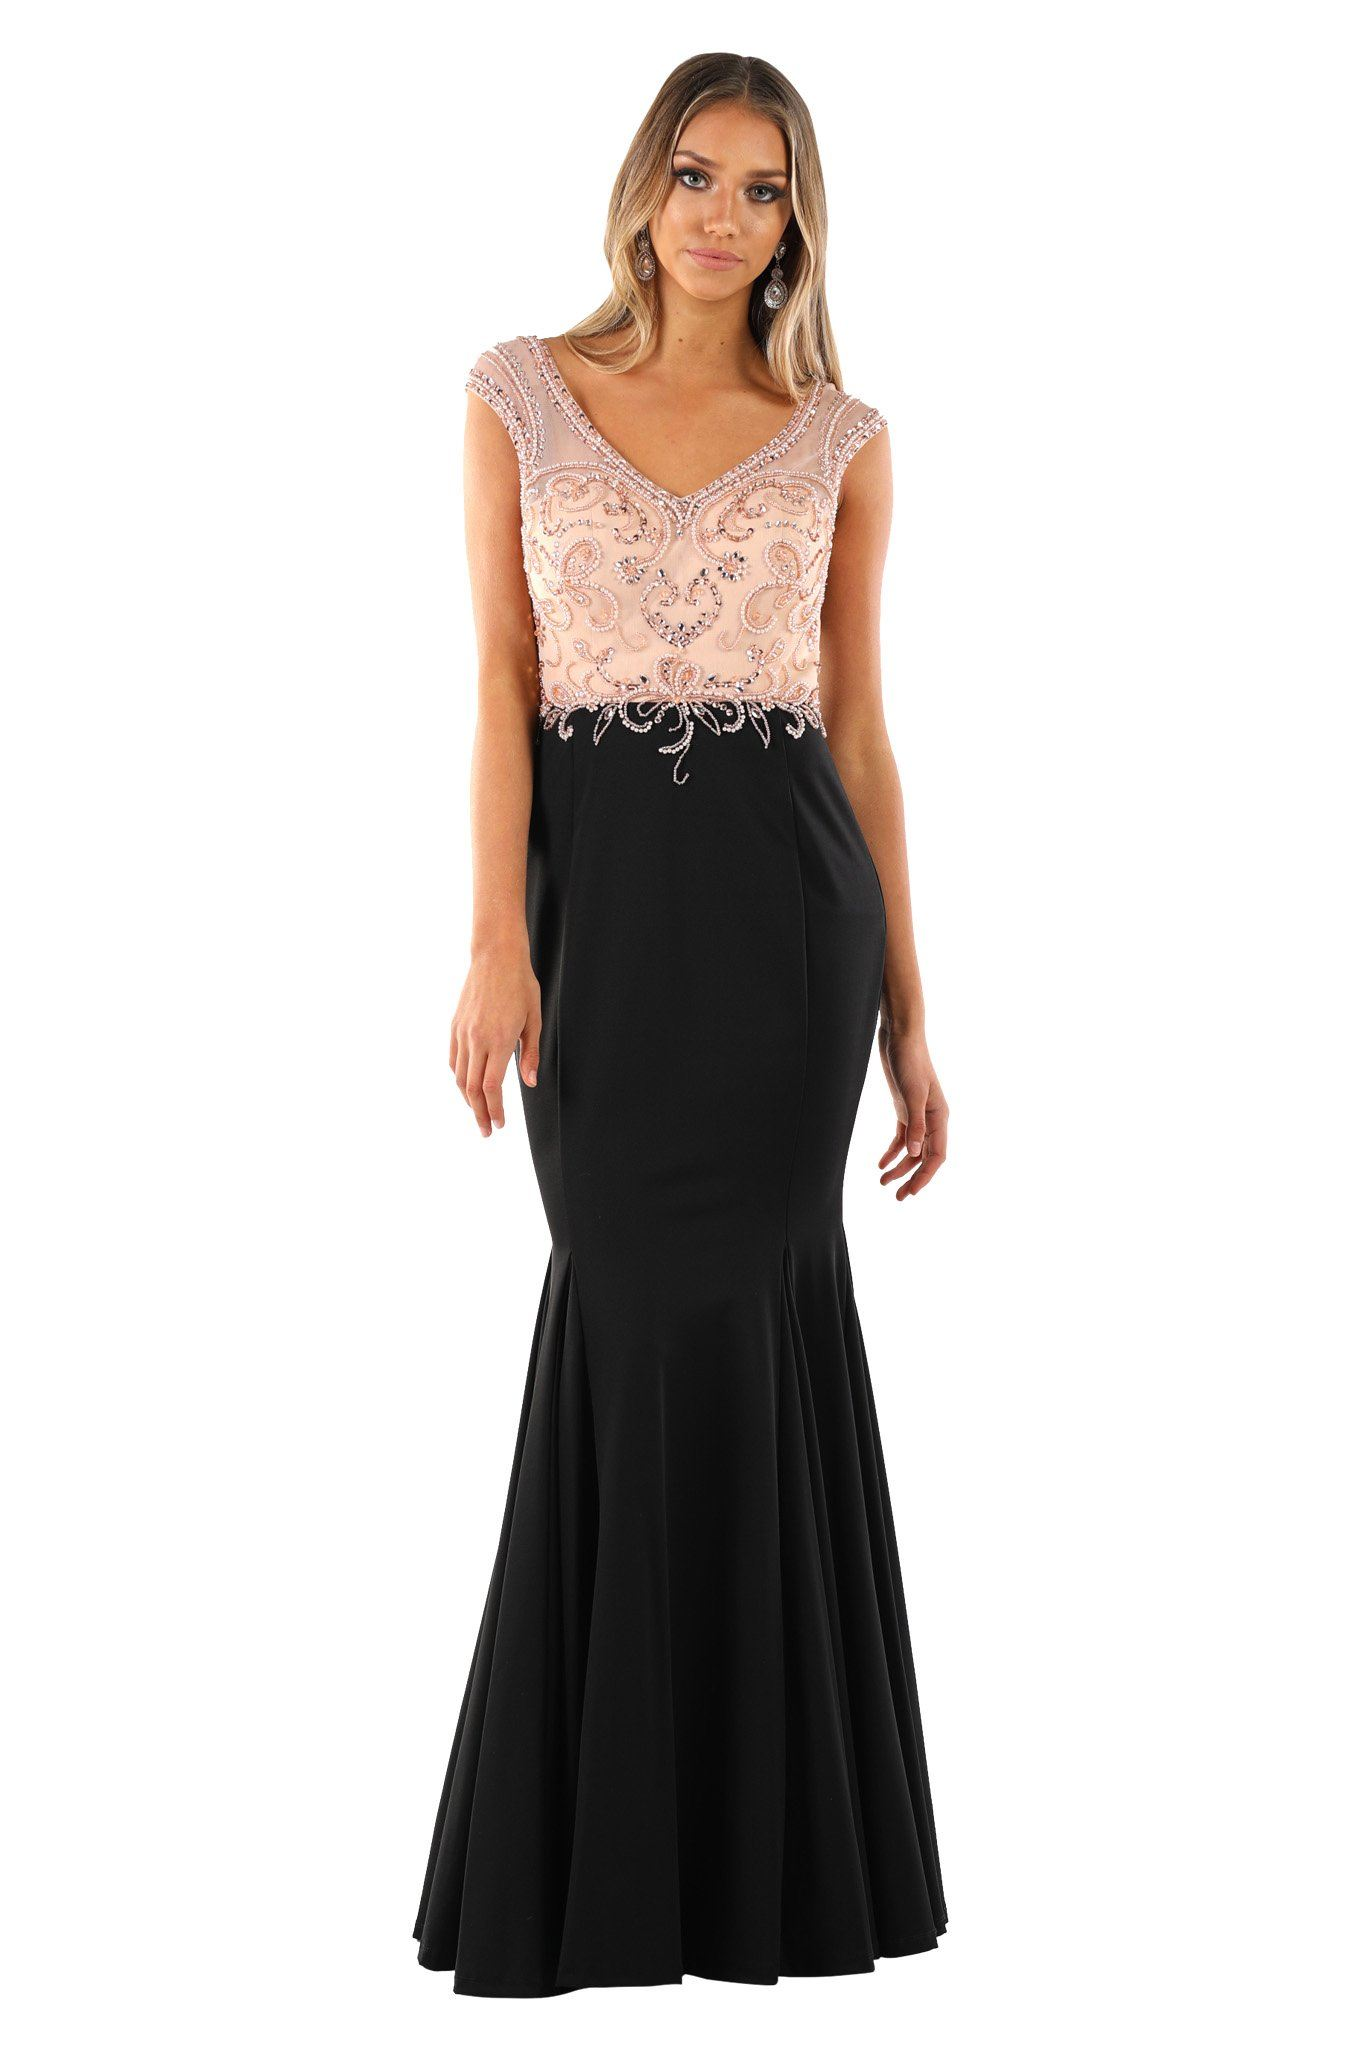 MIRIAM Beaded Gown - Peach/Black (Size S - Clearance Sale)